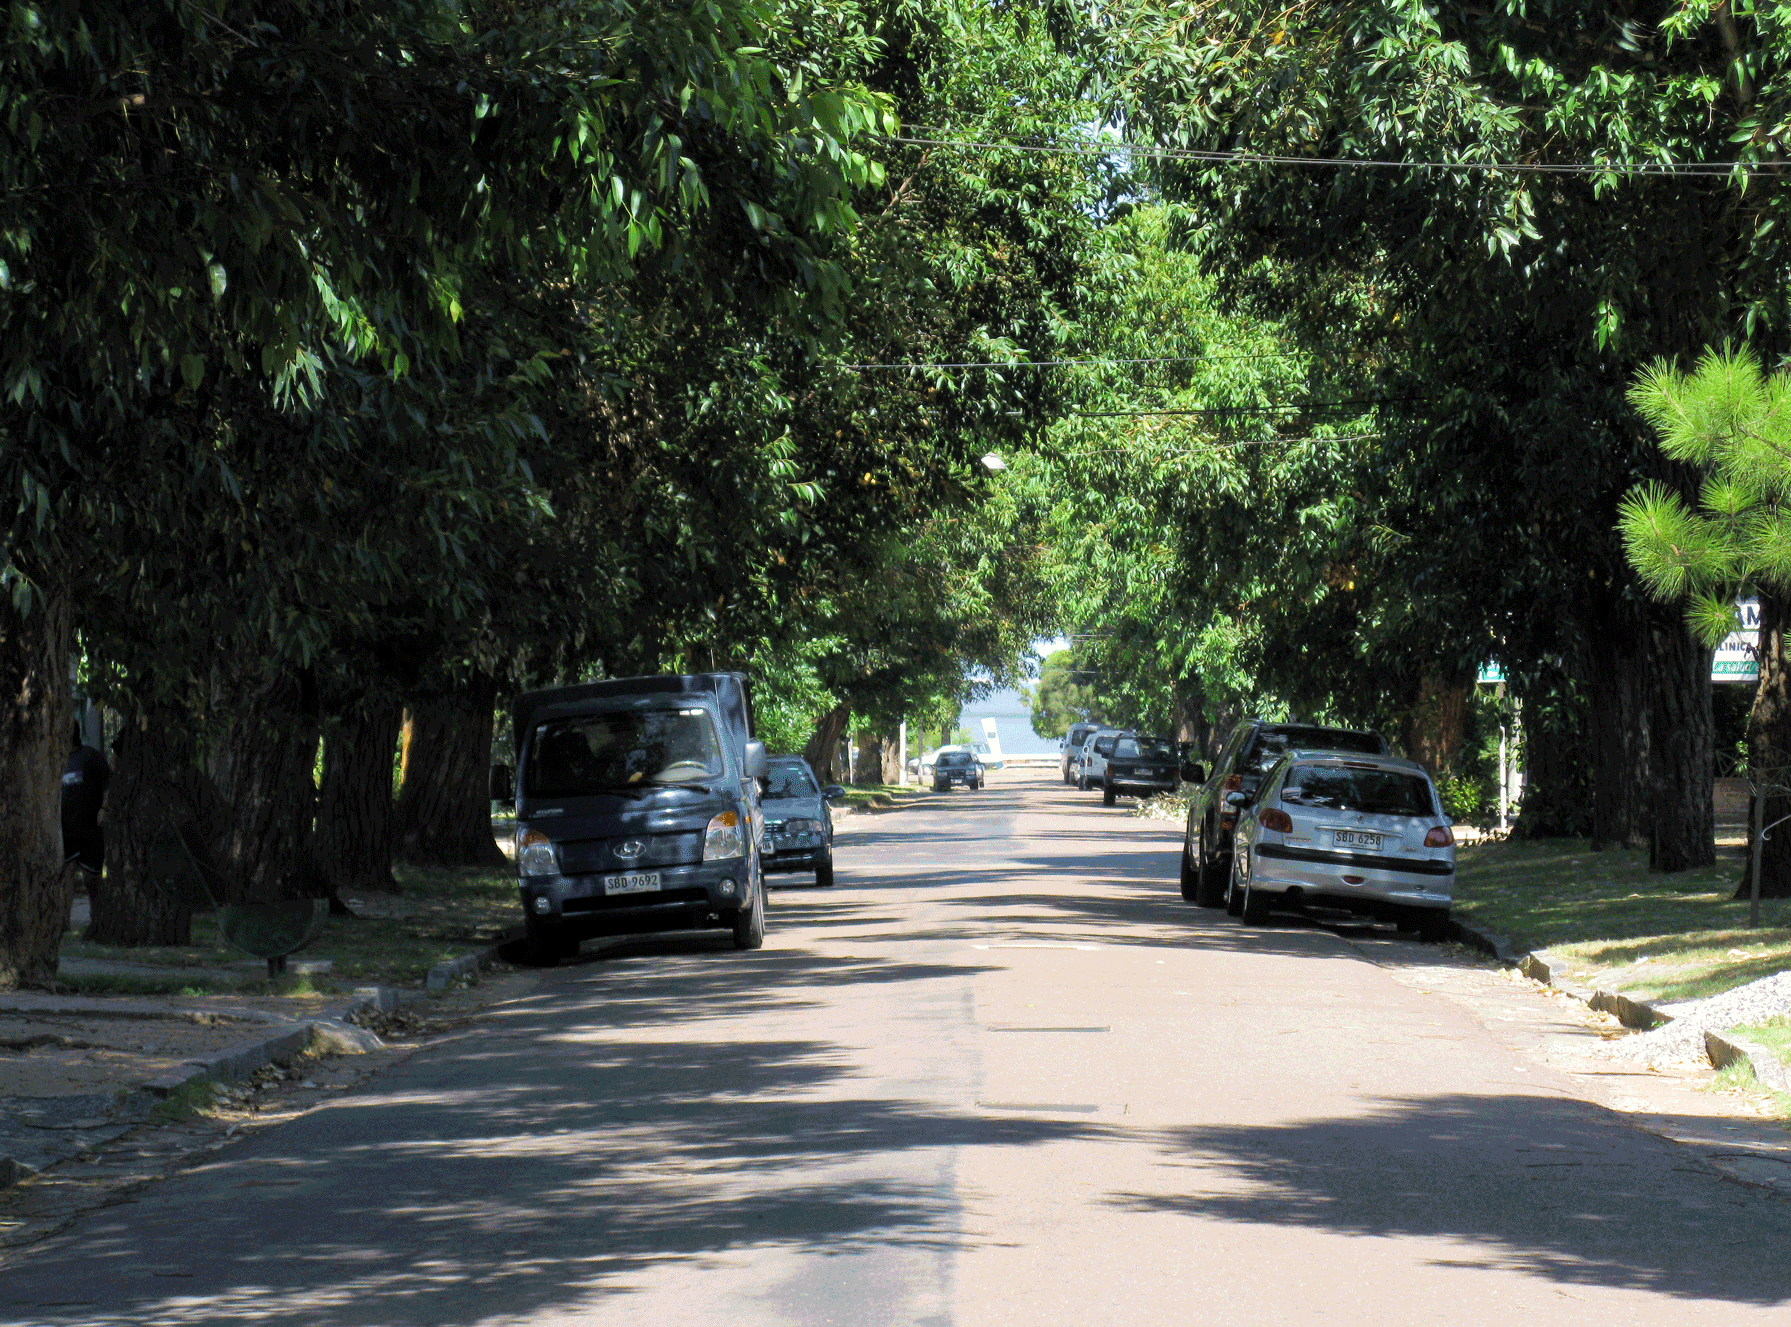 Clean, tree-lined streets lead right to the water's edge